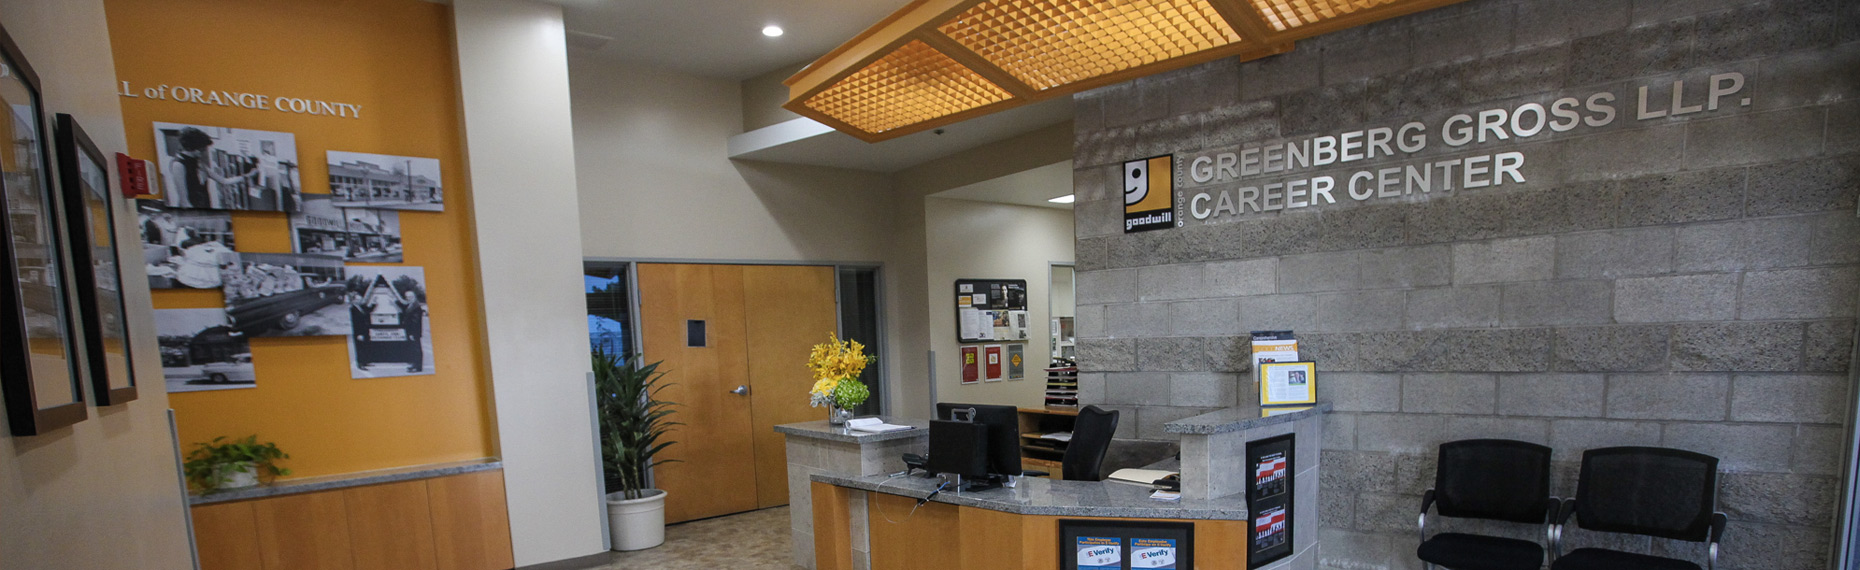 Greenberg Gross LLP career center reception area at goodwill orange county